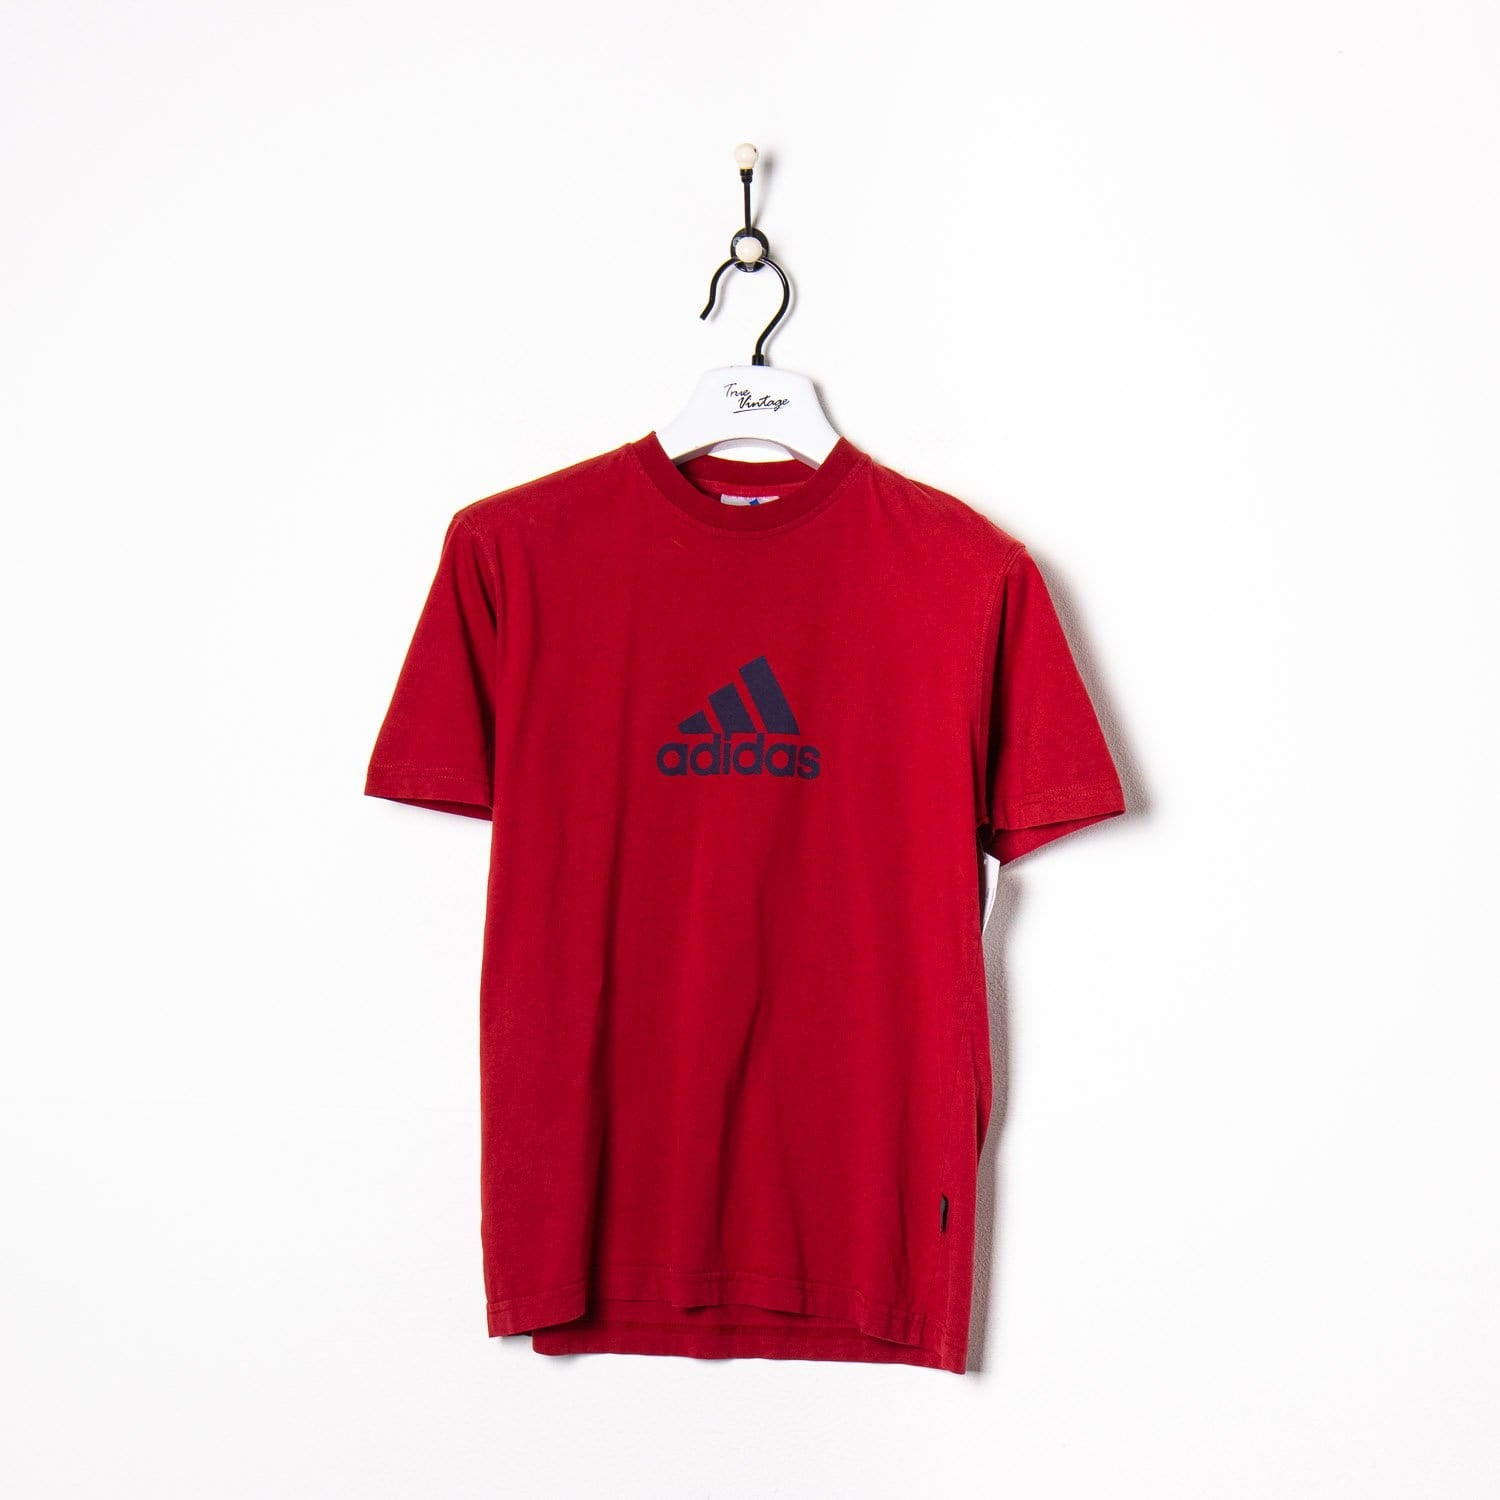 Marlboro Cord Over Shirt Red XL